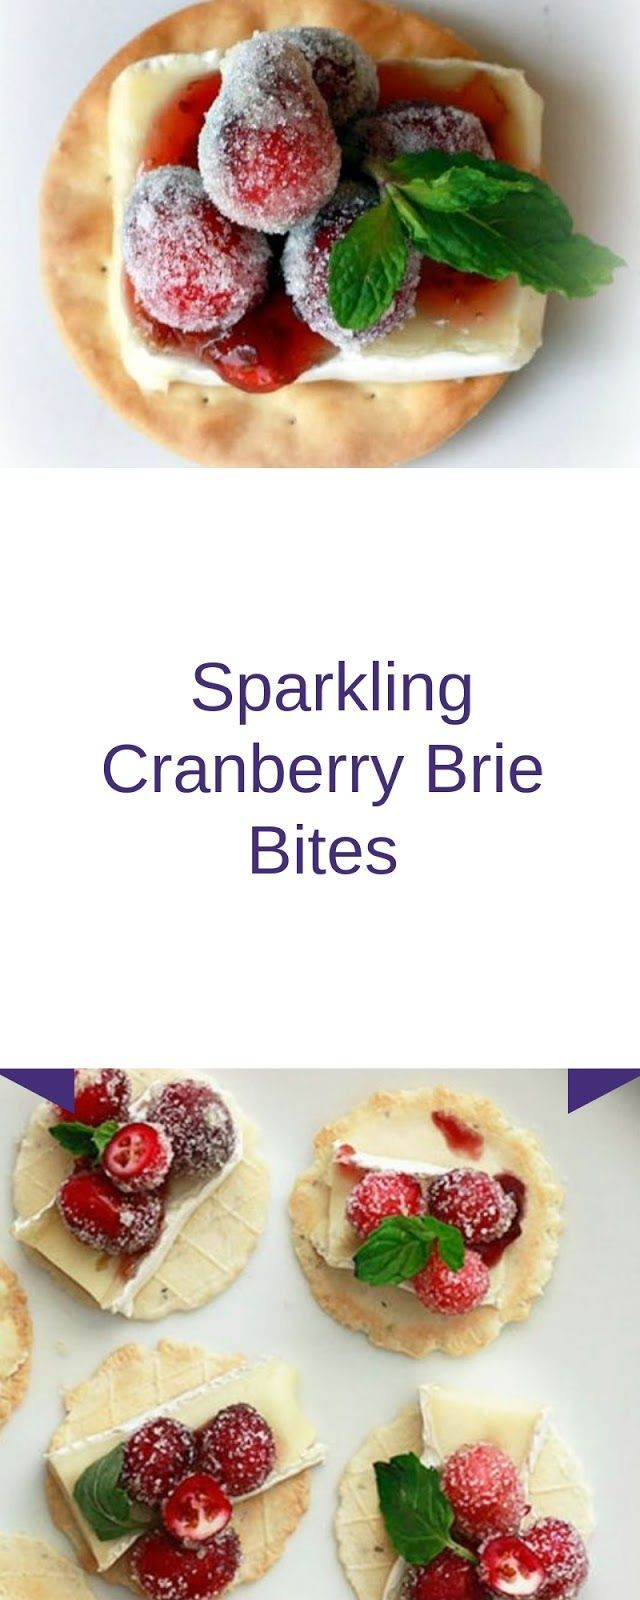 Sparkling Cranberry Brie Bites #christmas #appetizer | Yumms Food Recipes #cranberrybriebites Sparkling Cranberry Brie Bites #christmas #appetizer | Yumms Food Recipes #cranberrybriebites